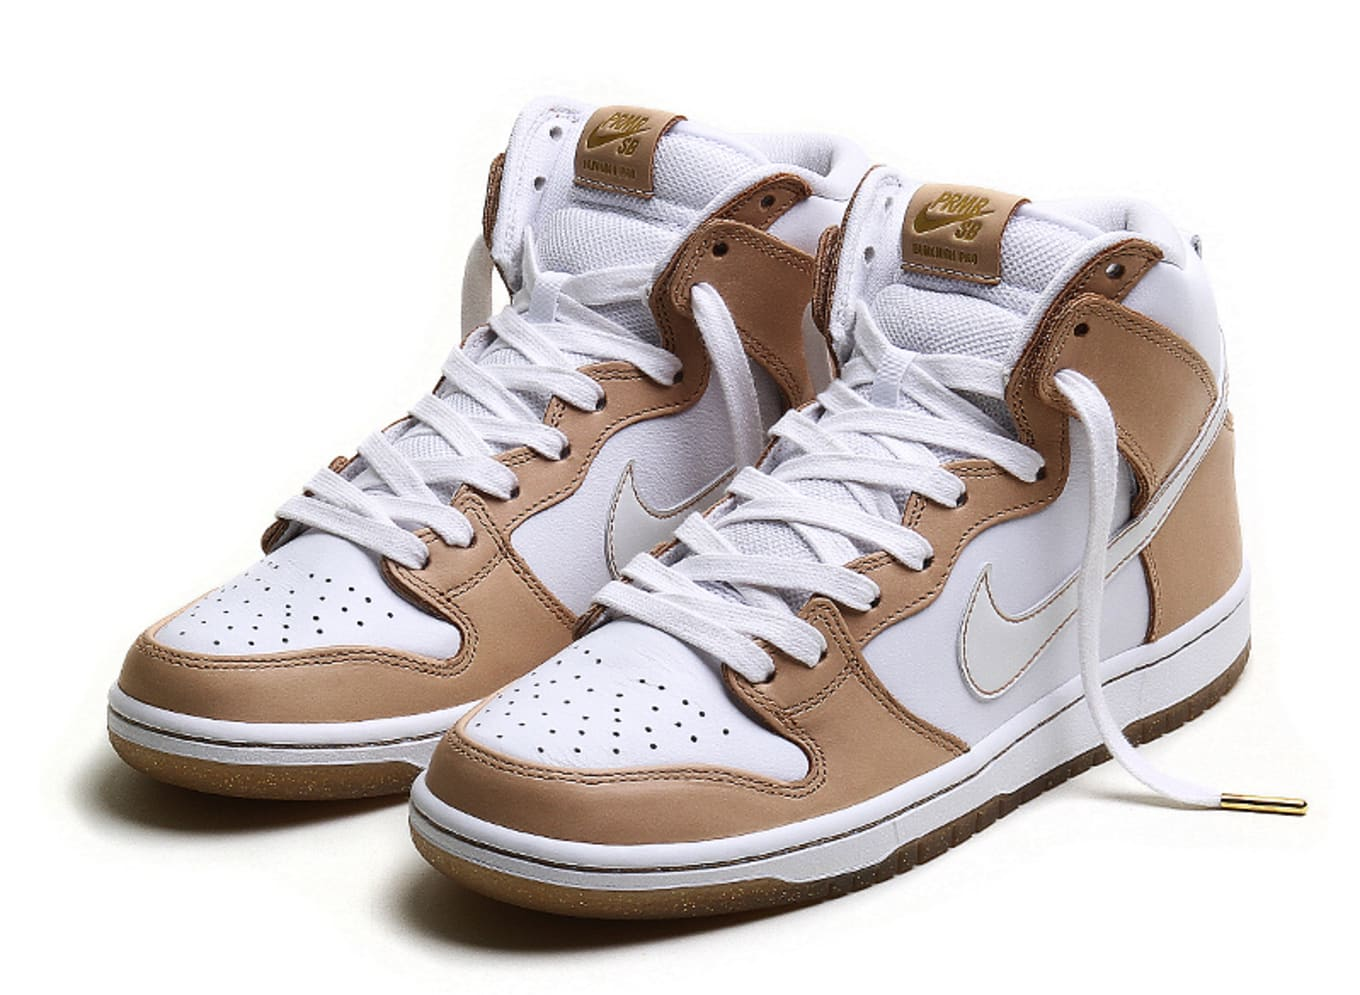 a01eae0bcecc Premier and Nike SB Link Back up For Dunk Highs